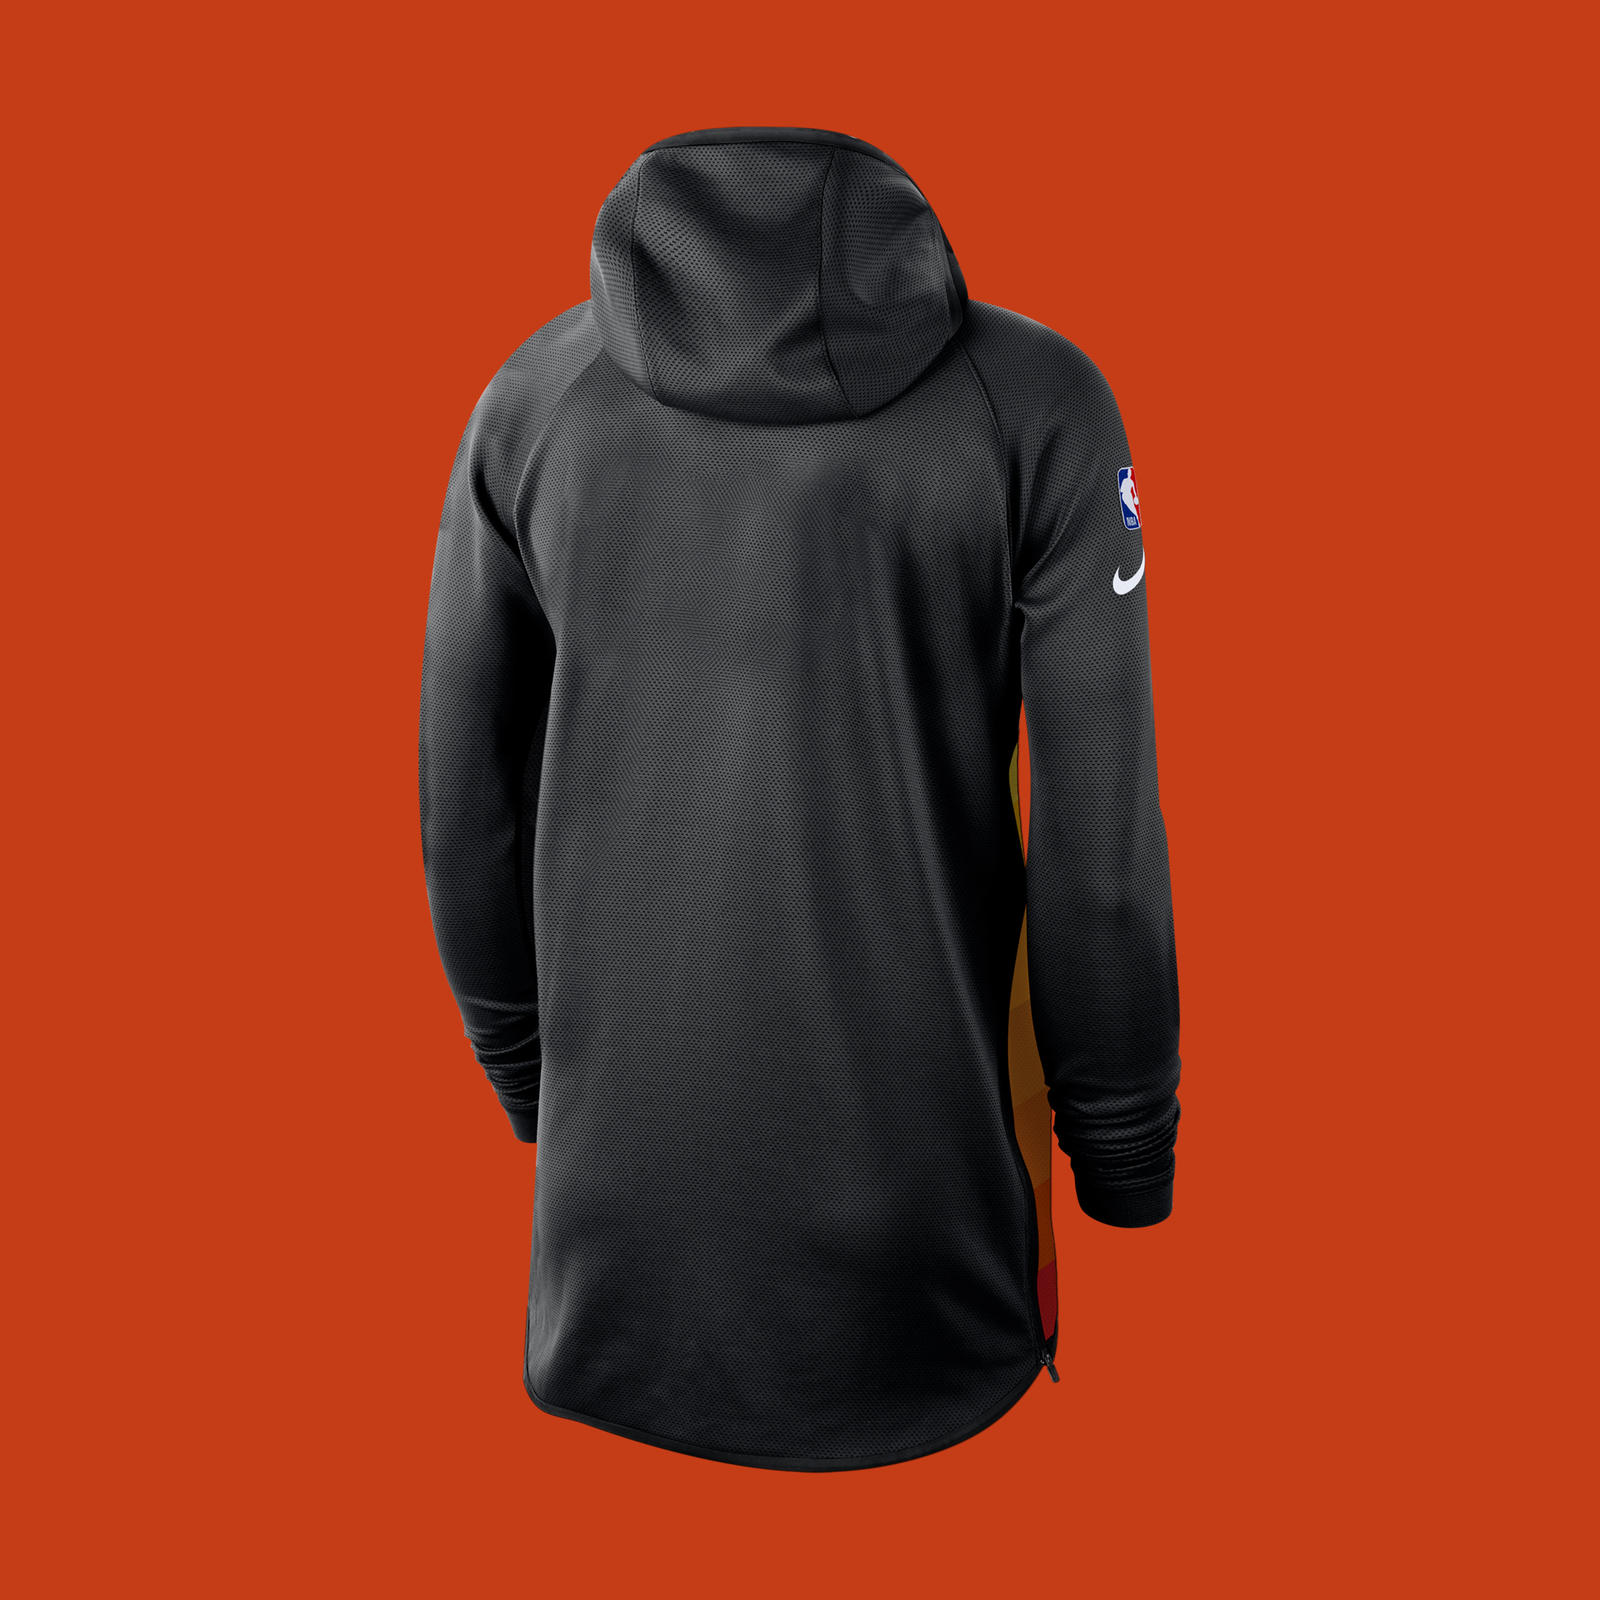 Nike NBA Earned Edition Showtime Hoodies 2019-20 Official Images 1